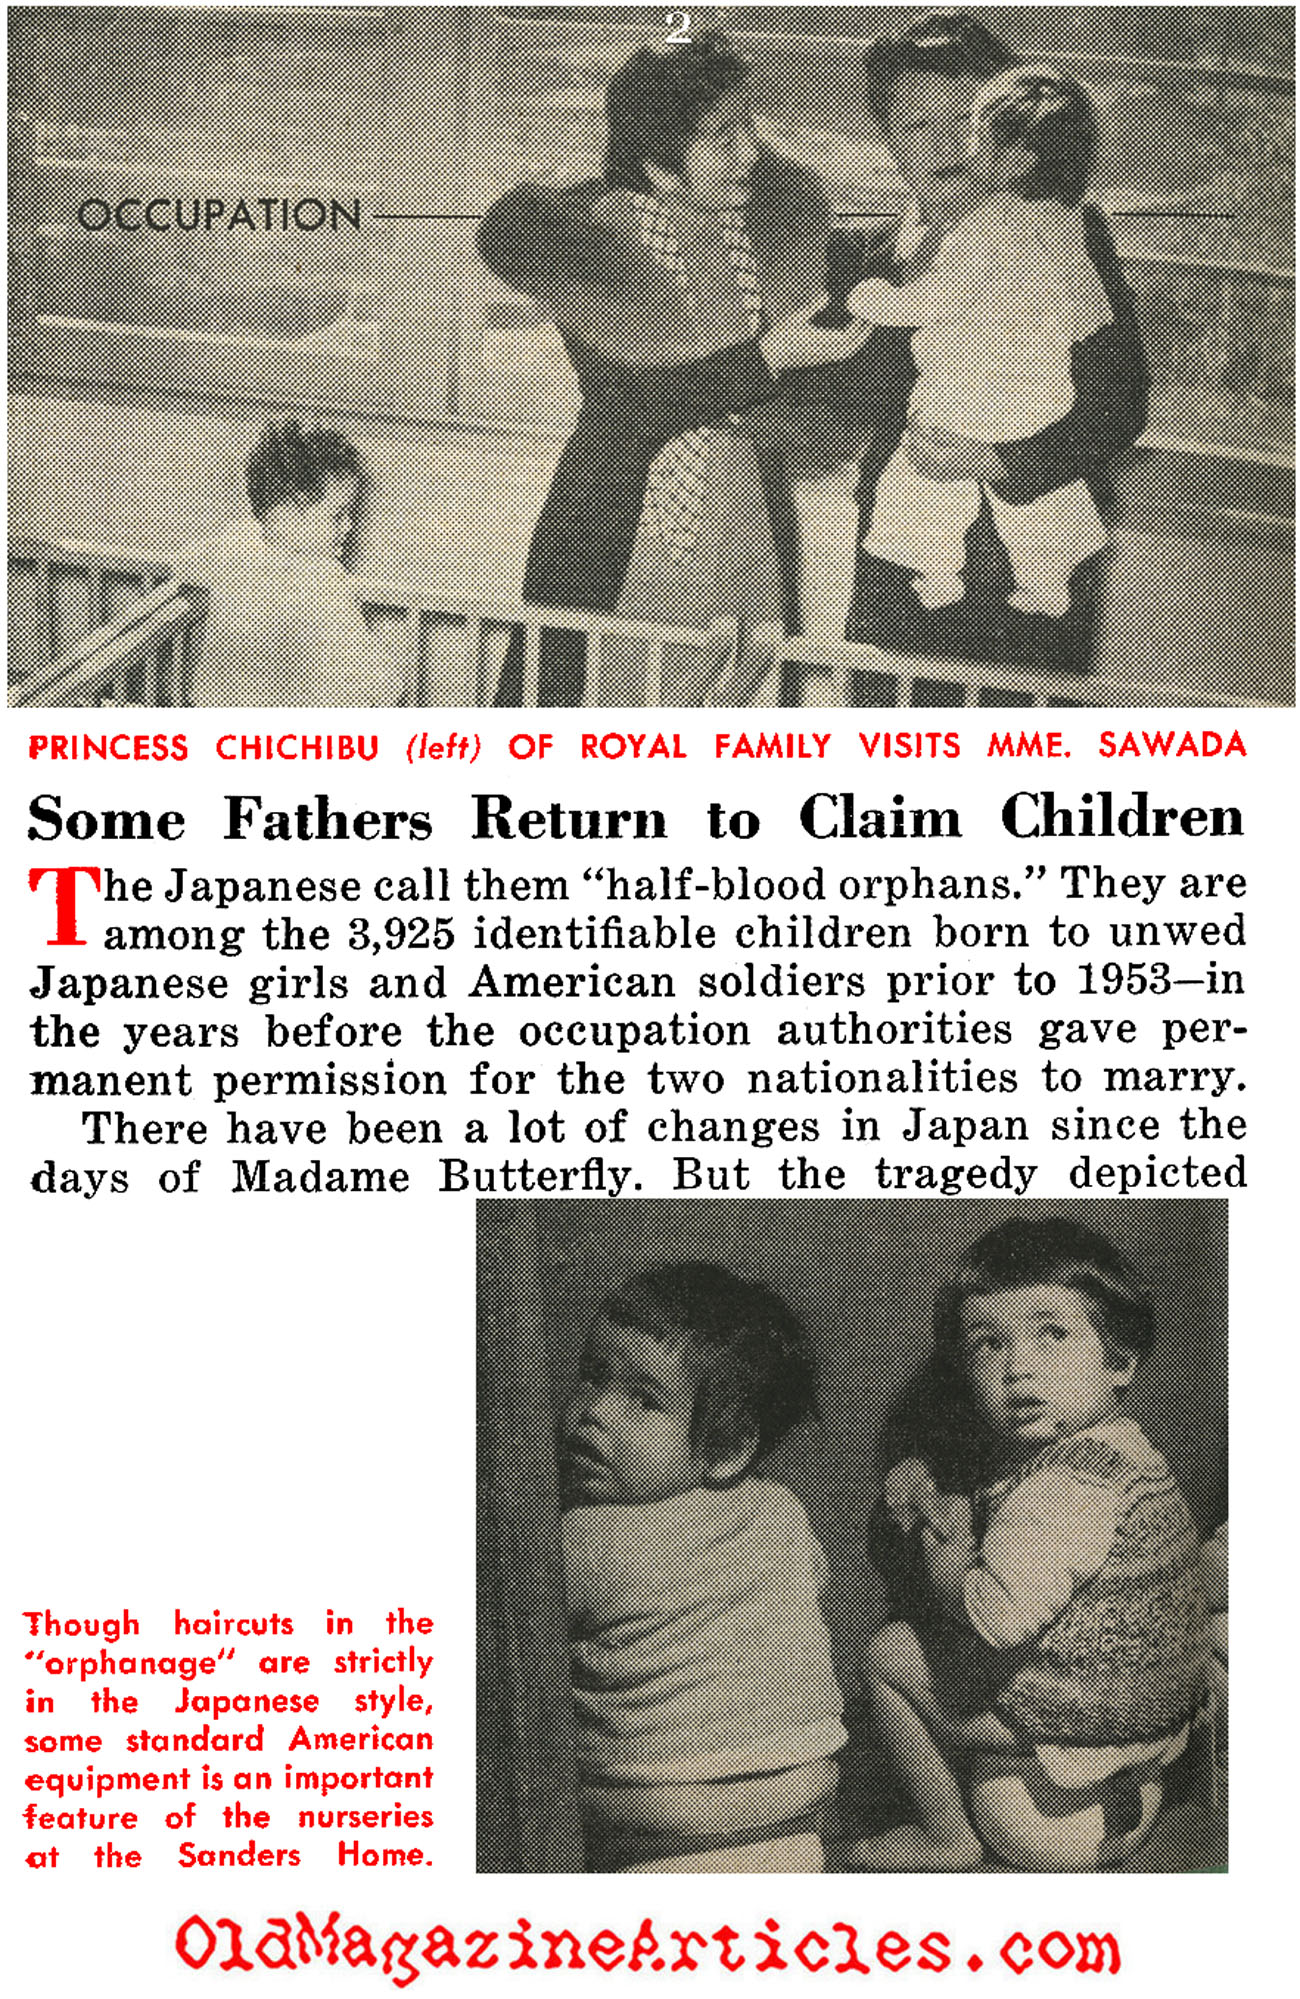 The War-Babies of Occupied Japan (People Today Magazine, 1954)